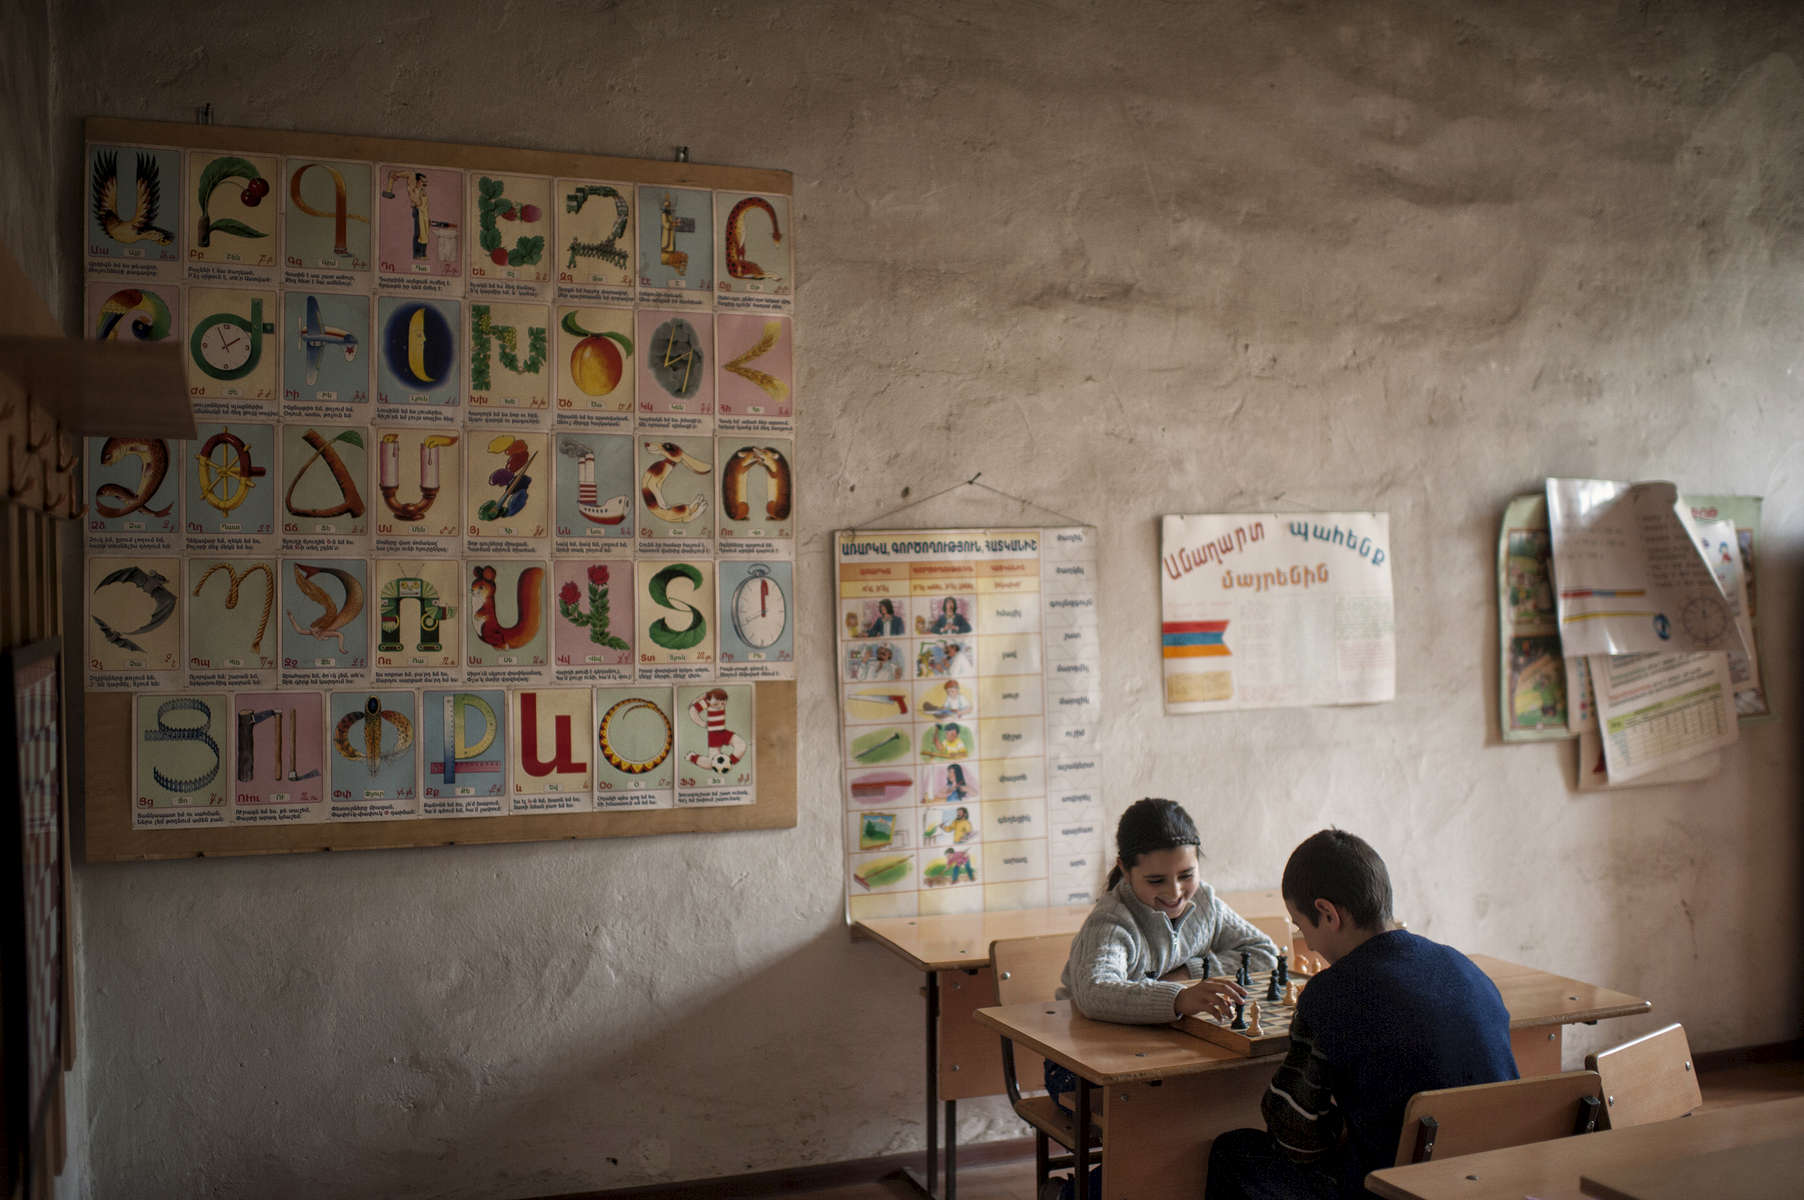 Nine year-old Diana Budaghyan beats ten year-old Artur Petrosyan in chess during school in Khtsaberd village. The area is very heavily mined, and HALO is trying to raise the funds to clear the minefields. Many of the men in the village make their living chopping and selling firewood, which requires visits to a heavily mined forest.